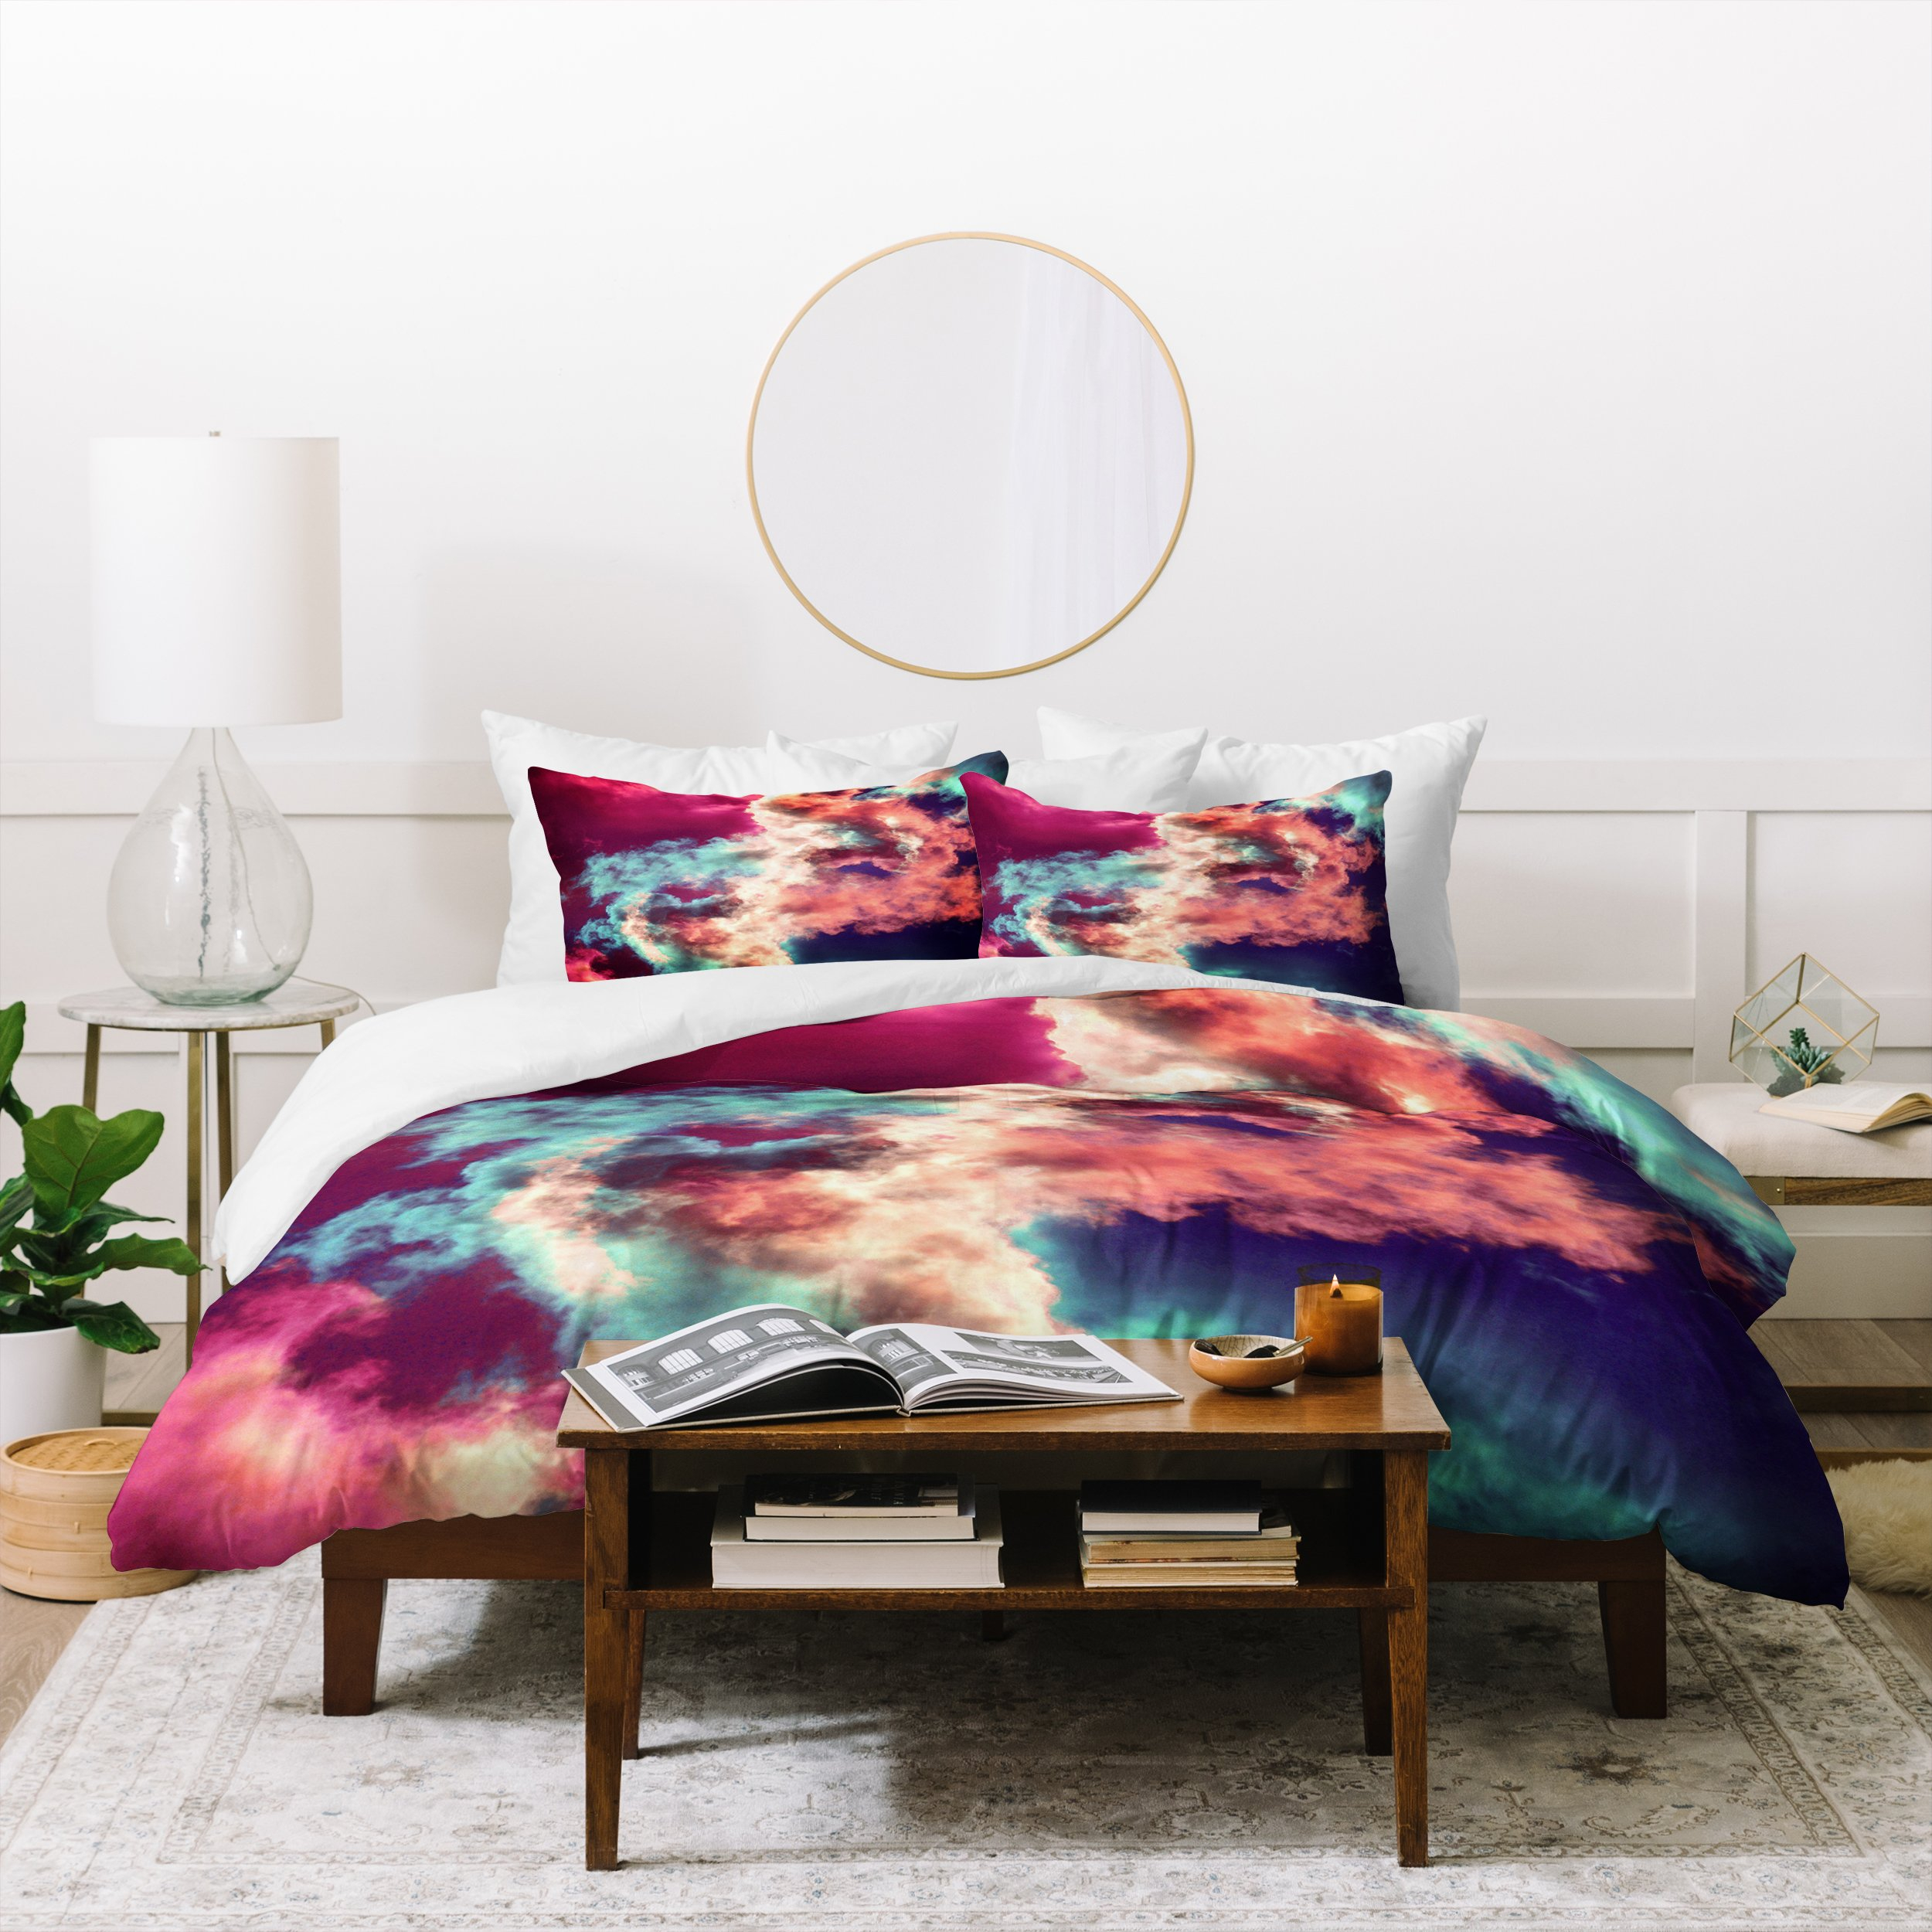 Image of Caleb Troy Yin Yang Painted Clouds Duvet Cover